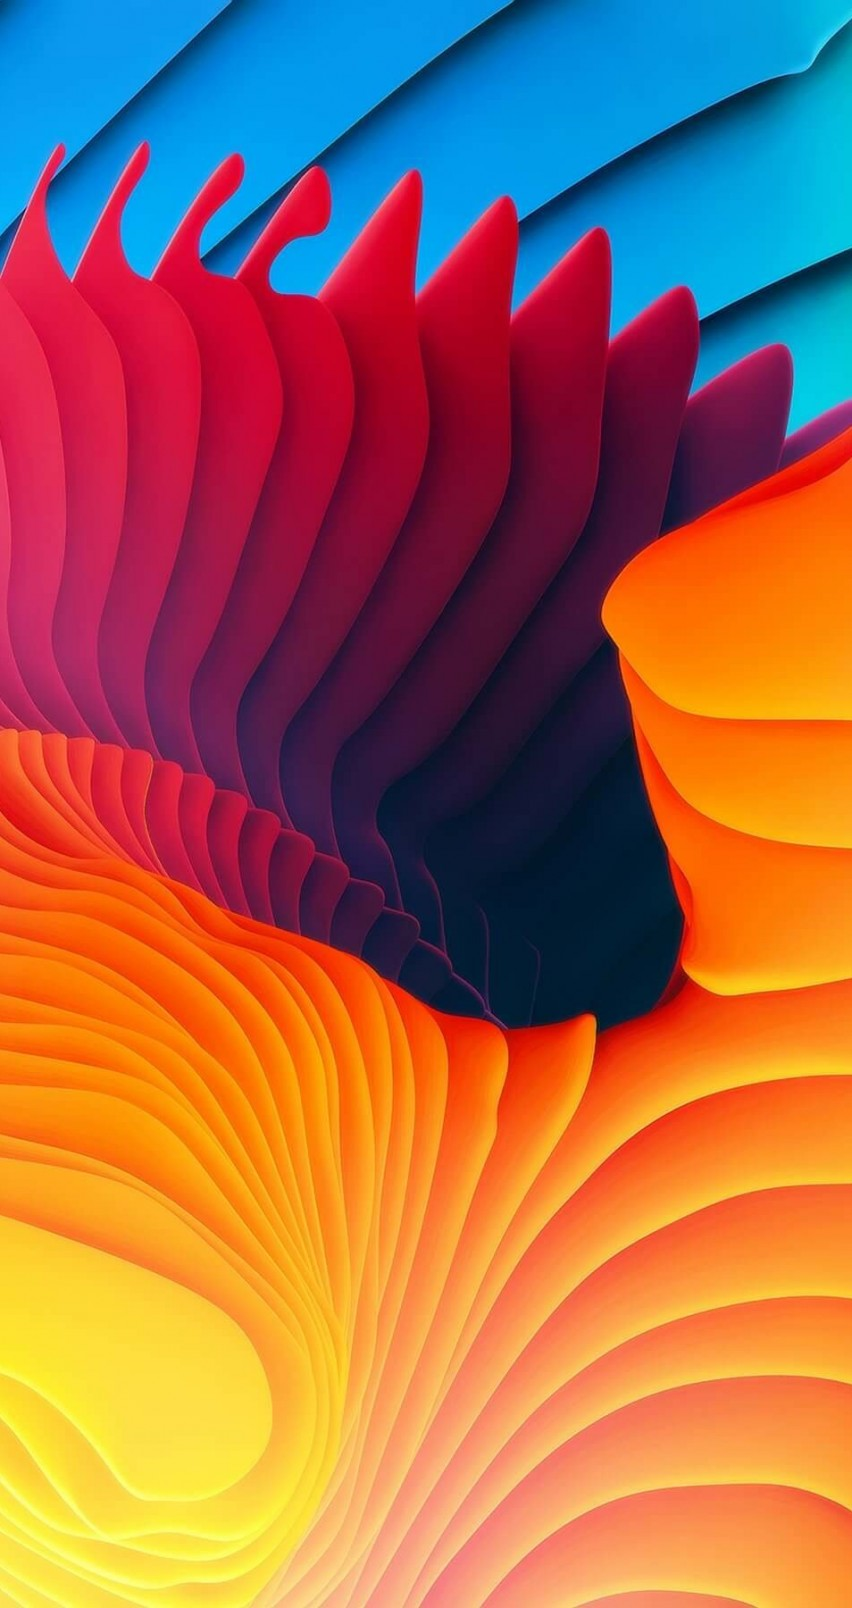 3D Colorful Spiral Wallpaper for Apple iPhone 6 / 6s